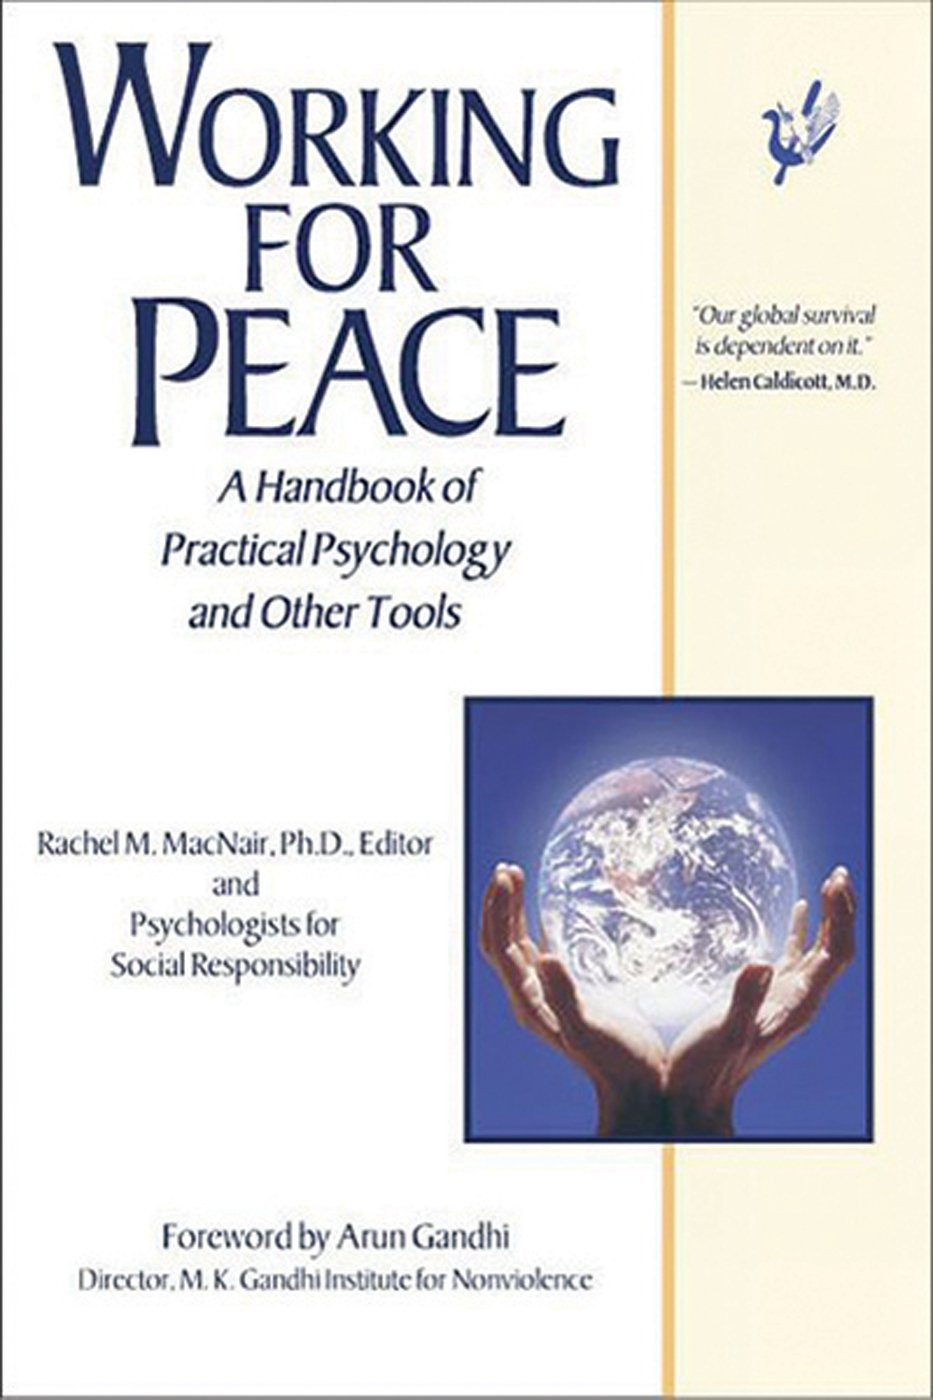 Working for Peace: A Handbook of Practical Psychology and Other Tools:  Rachel MacNair PhD, Arun Gandhi: 9781886230729: Amazon.com: Books